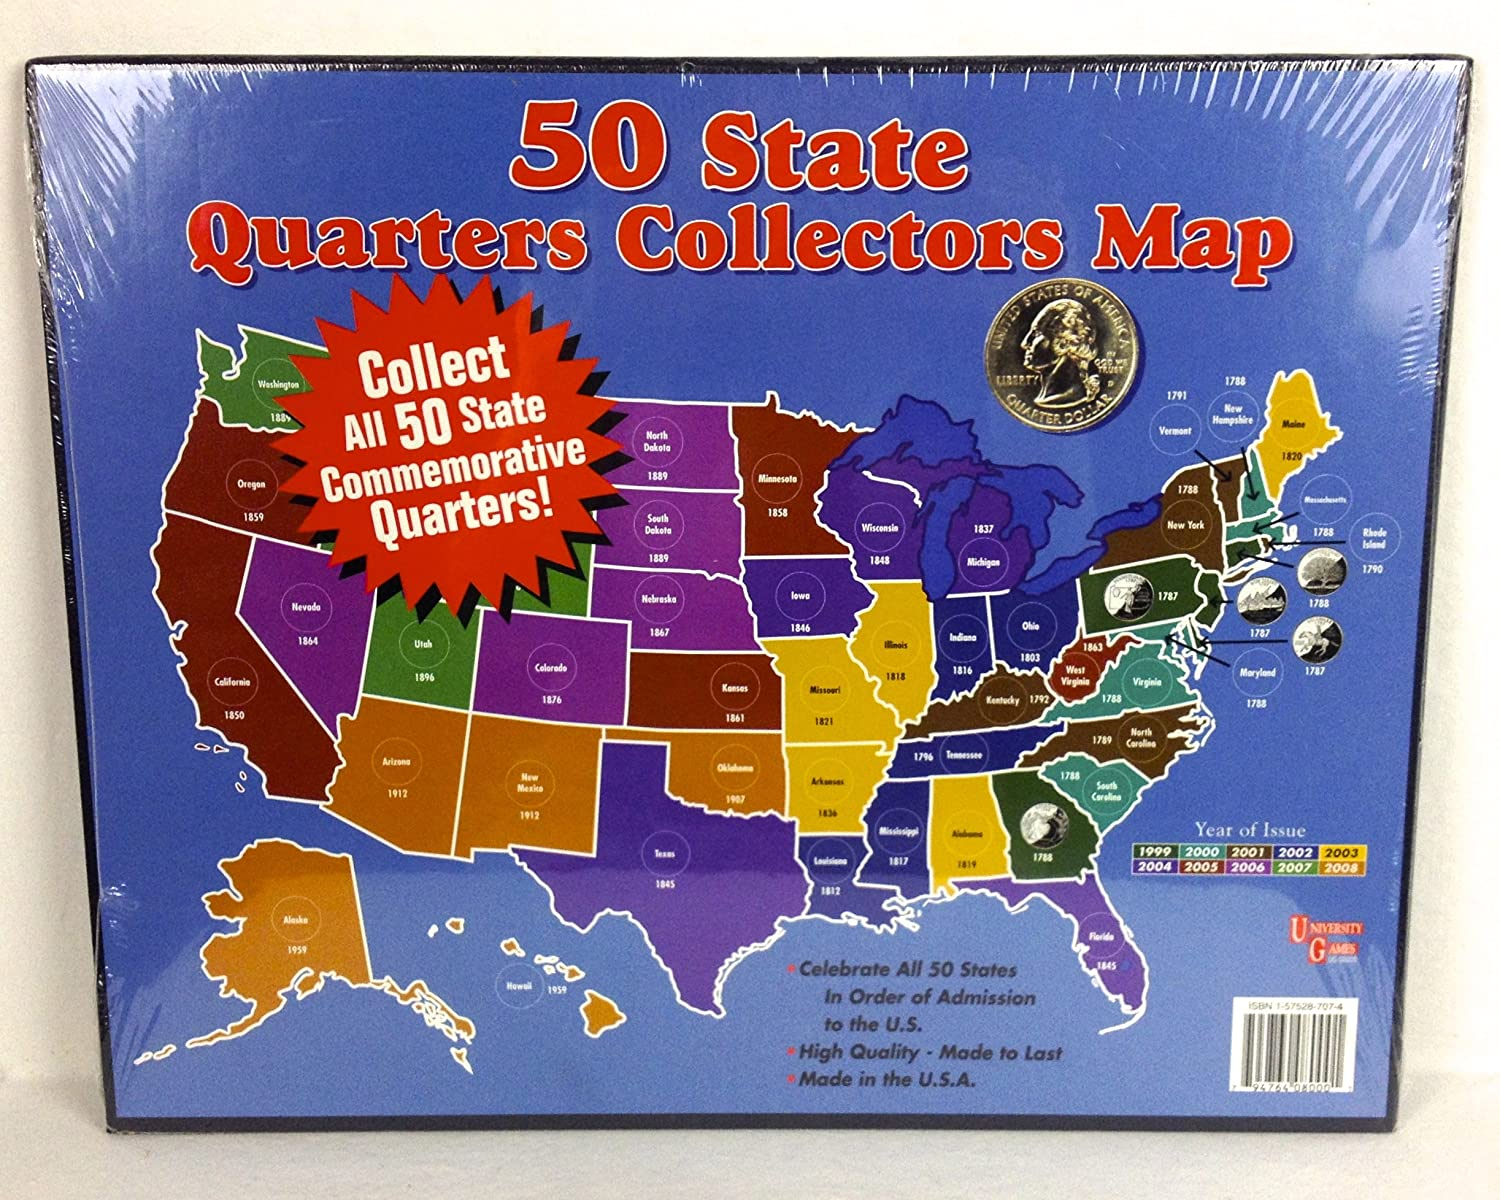 Amazoncom State Quarters Collectors Map Collectible Coins - Us map for quarters